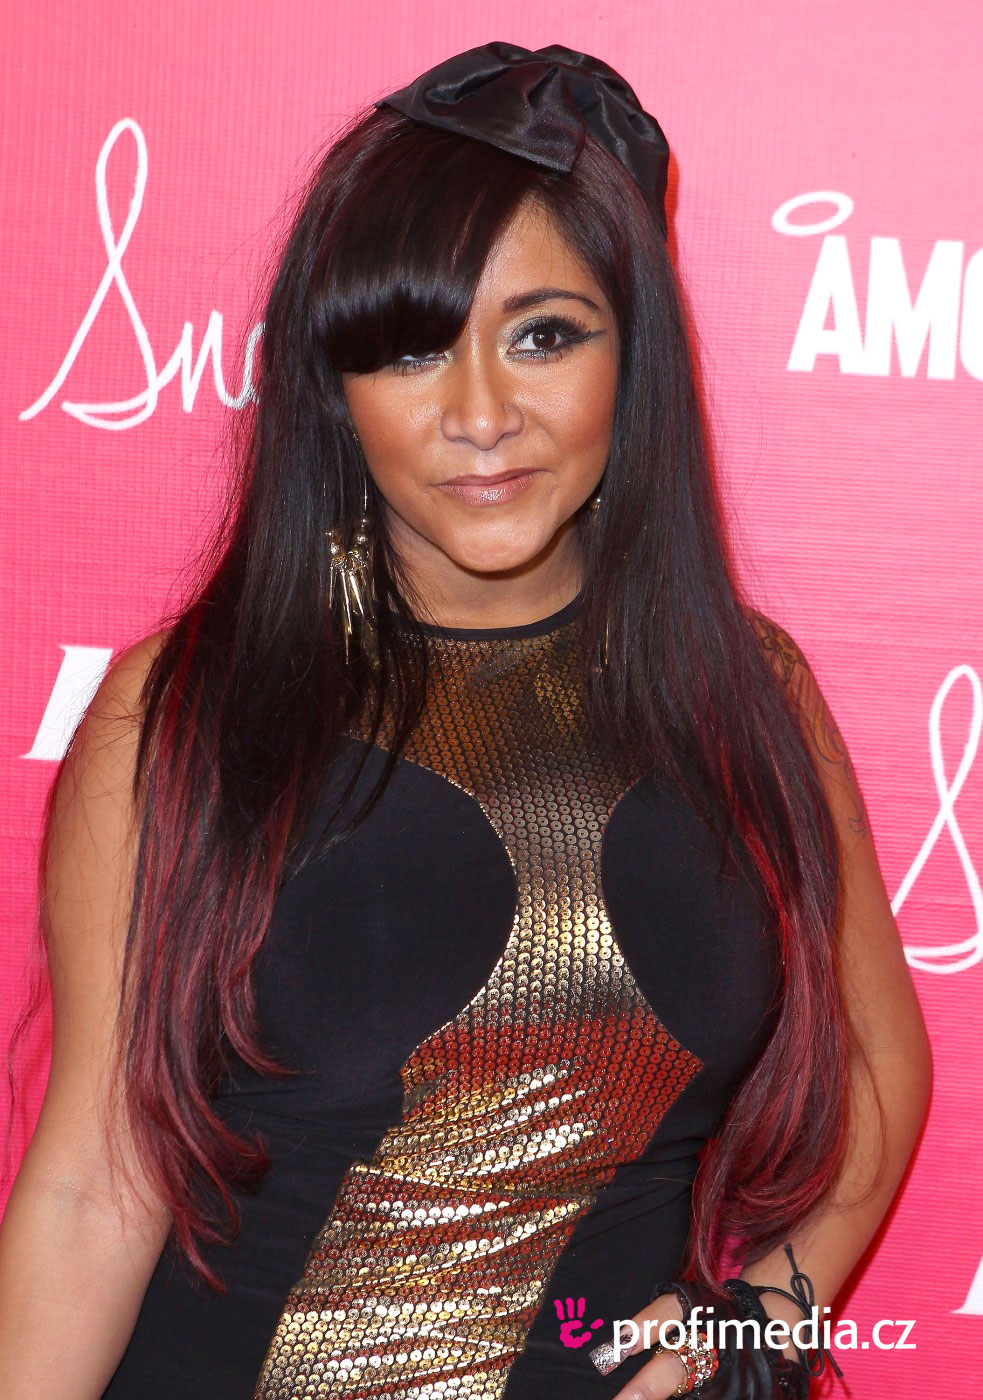 Snooki Hairstyle EasyHairStyler - Hairstyles for short hair upload photo